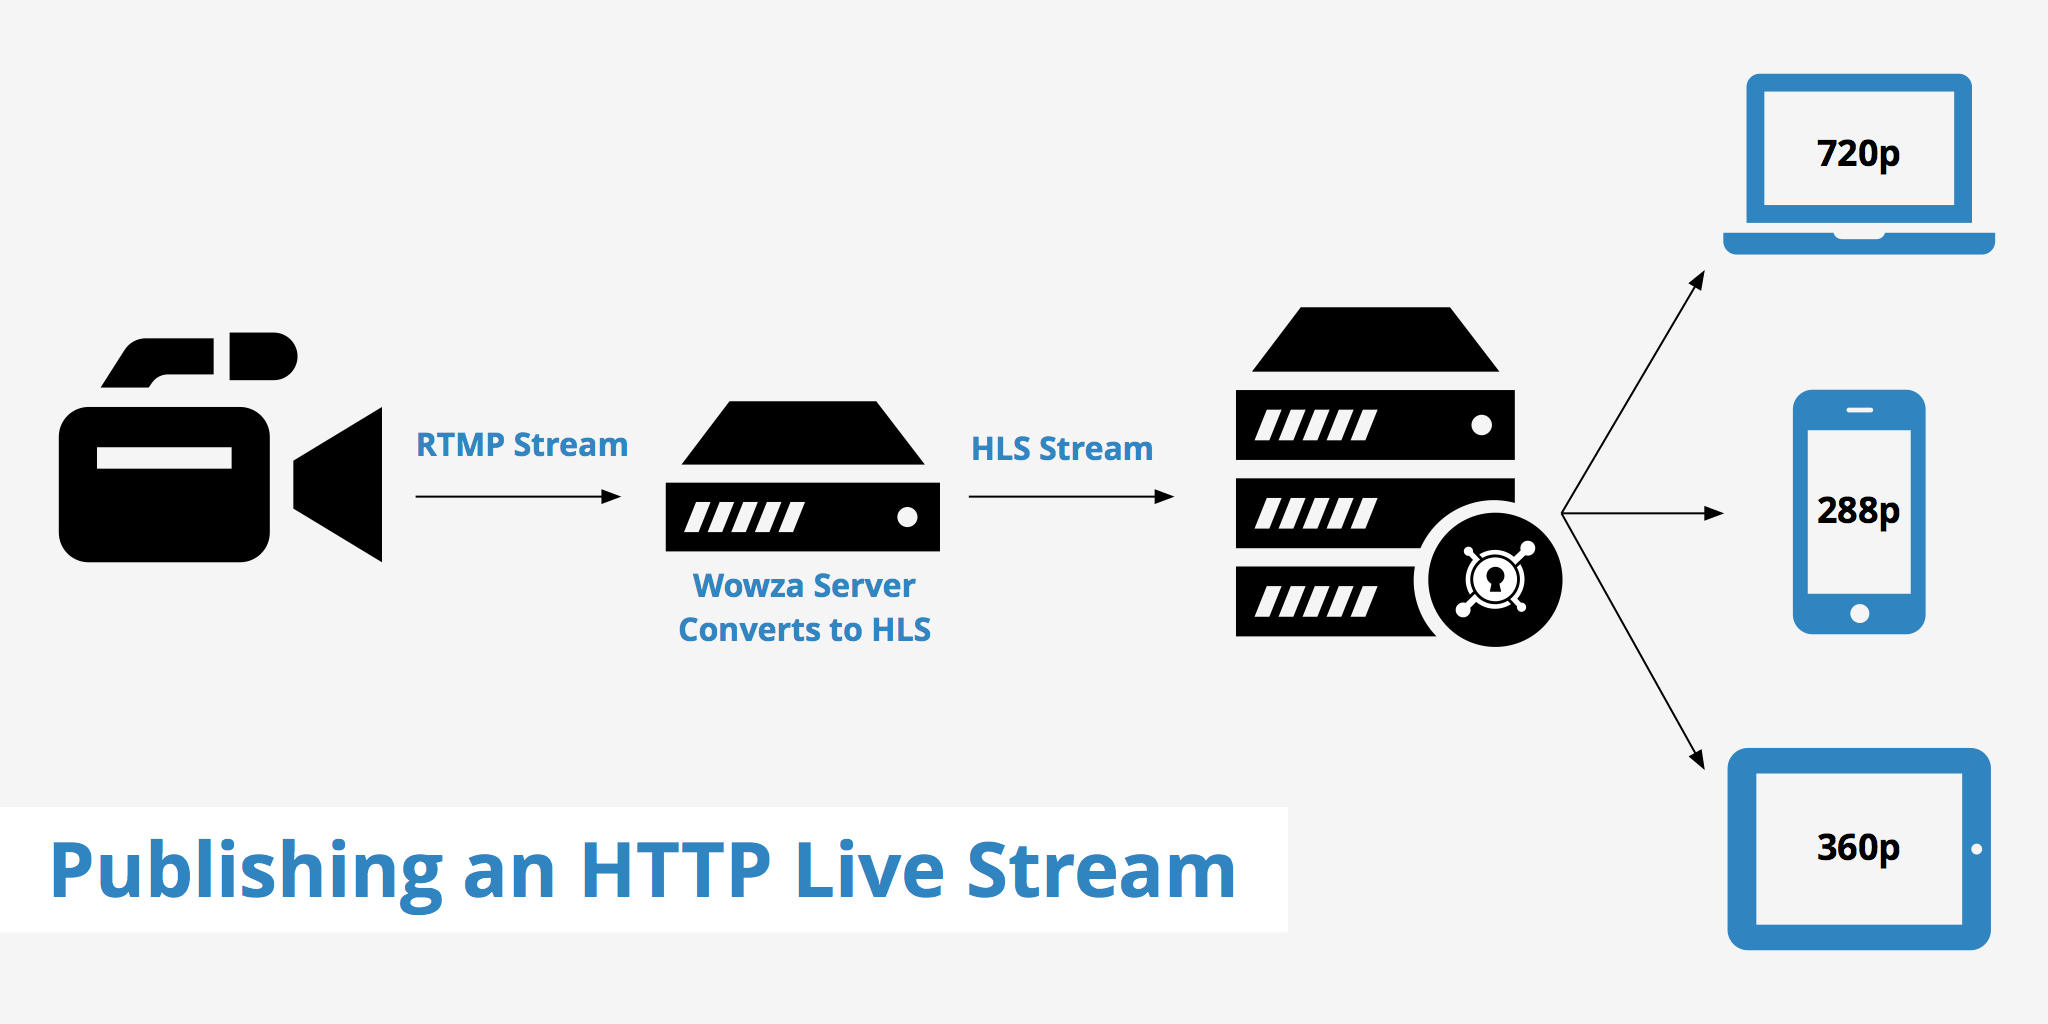 Publishing an HTTP Live Stream - KeyCDN Support